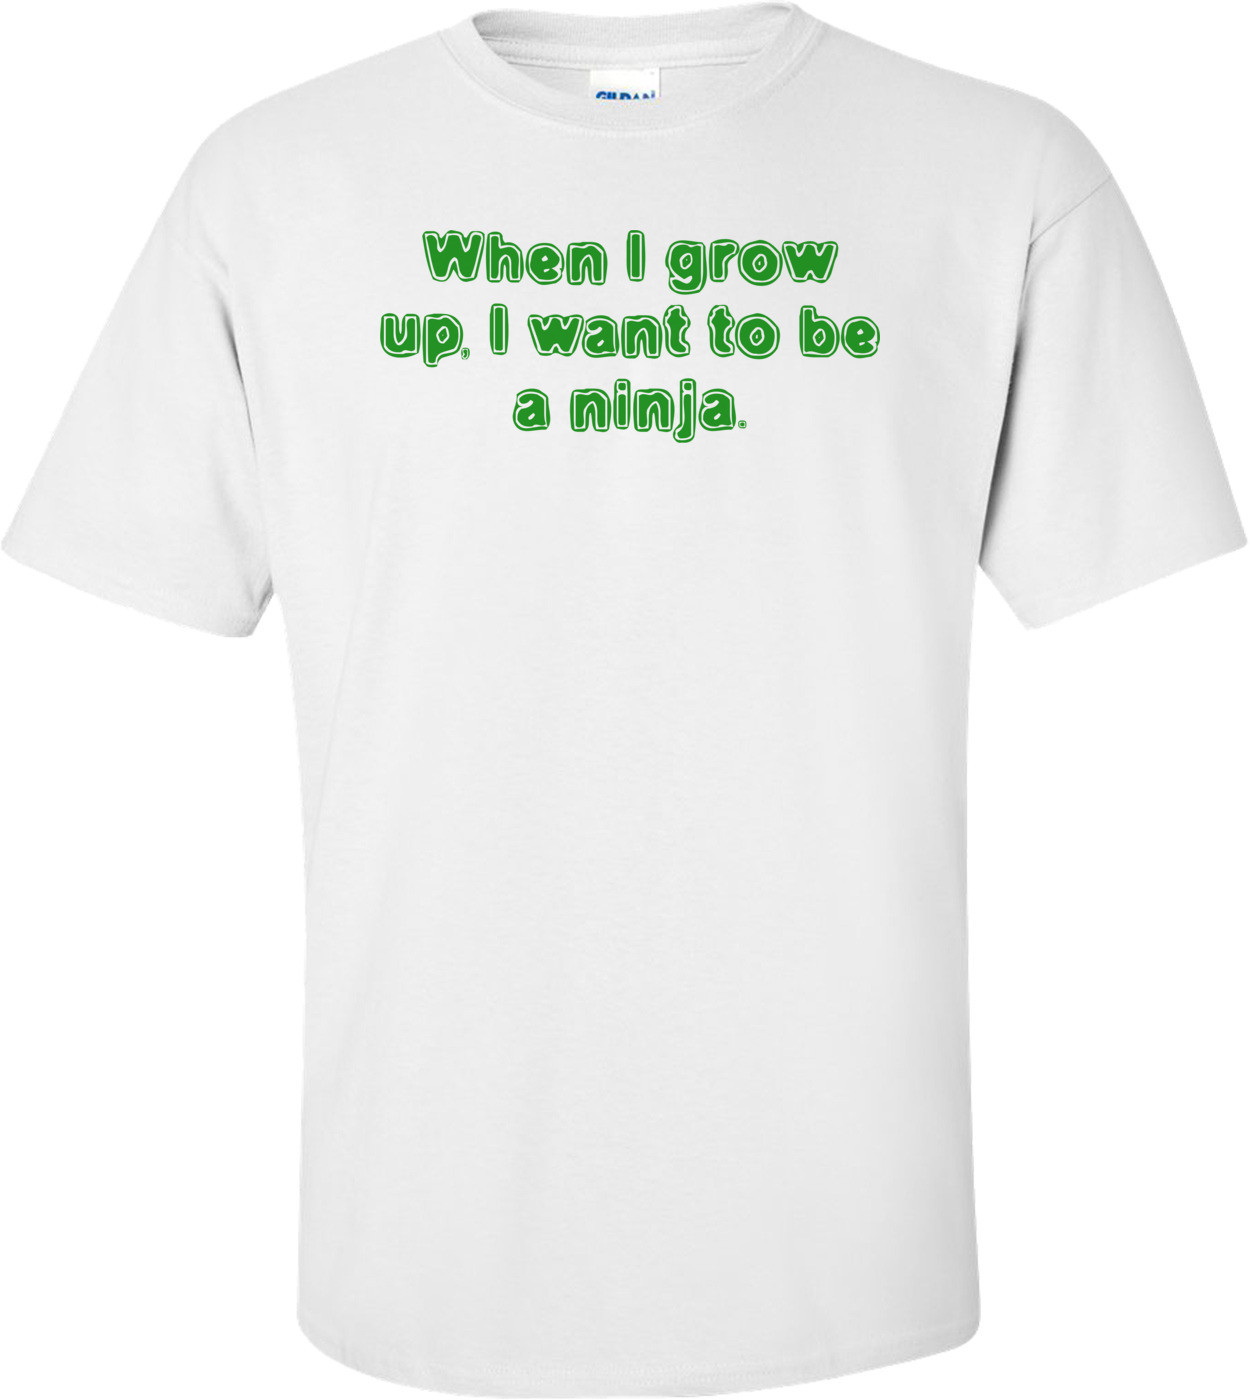 When I Grow Up, I Want To Be A Ninja. Shirt